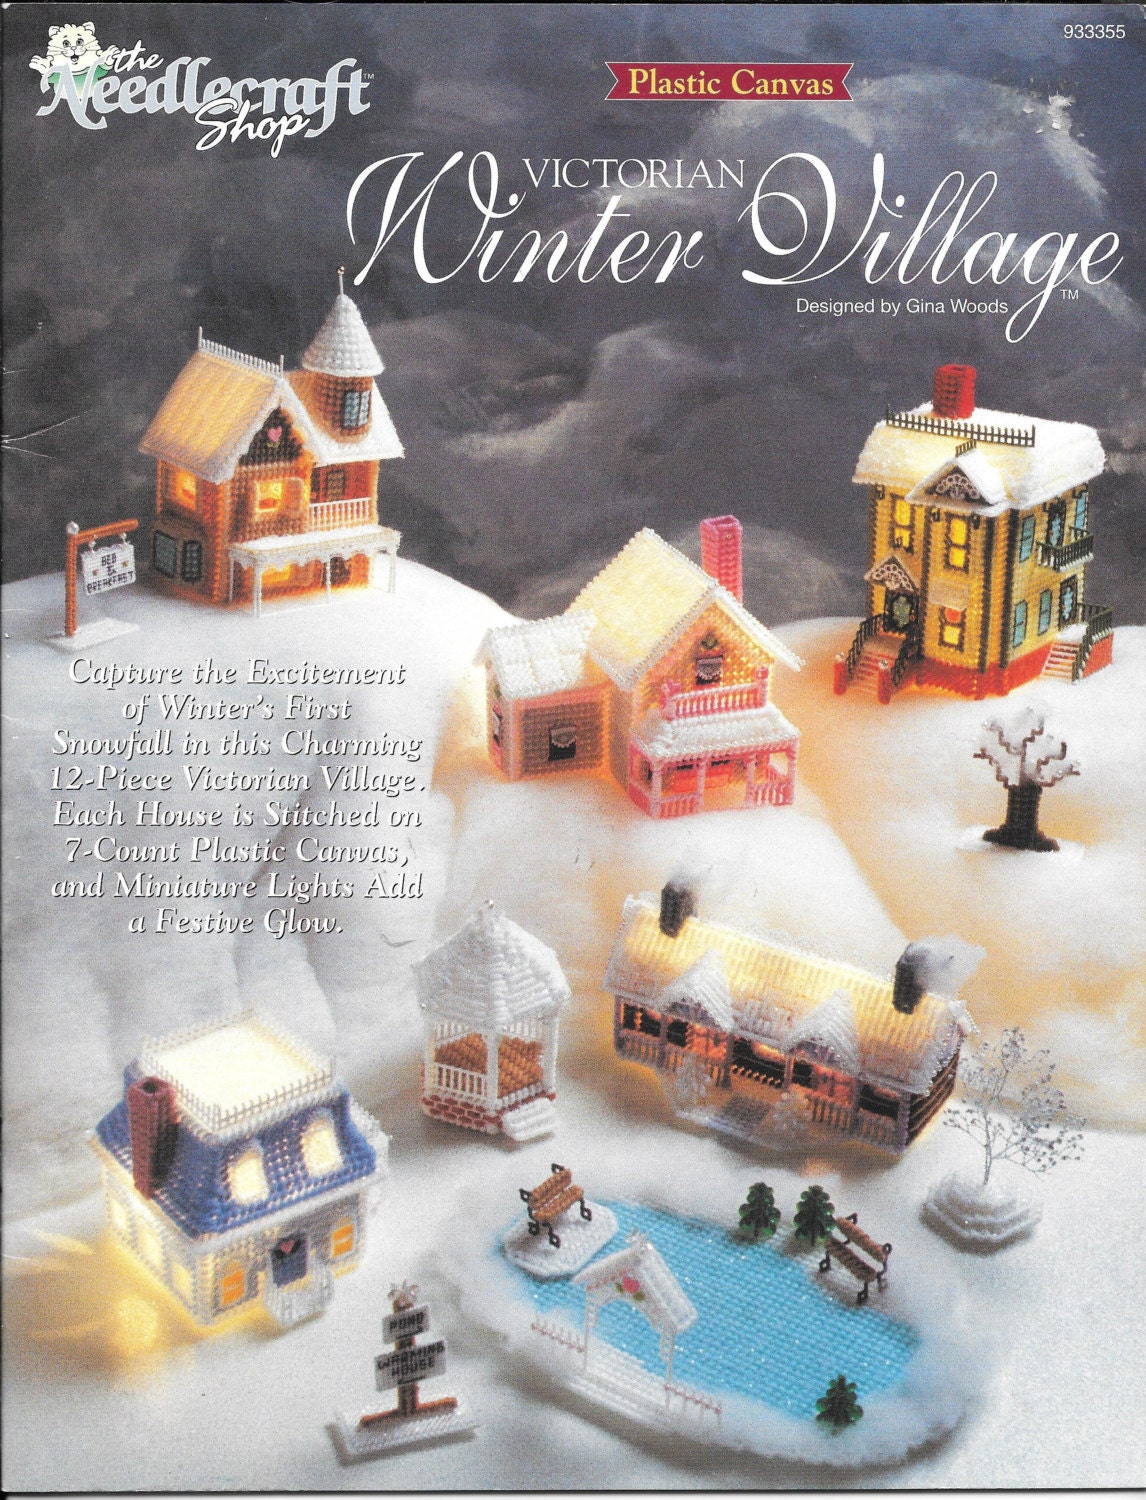 The Needlecraft Shop Victorian Winter Village Plastic Canvas